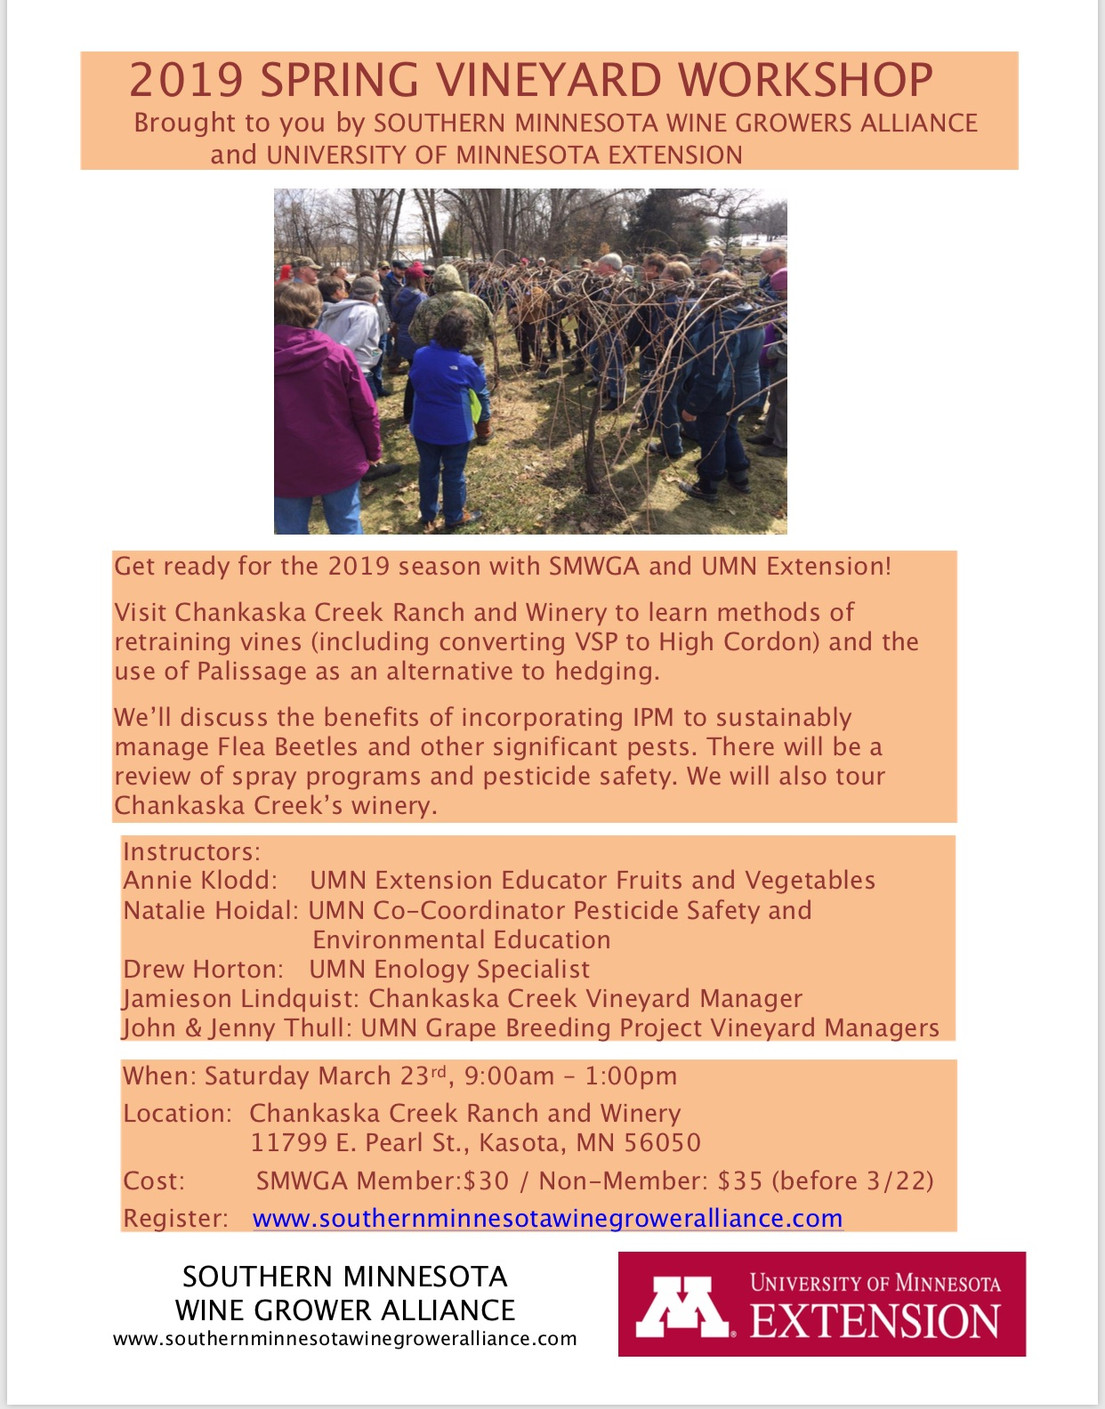 Spring Vineyard Workshop March 23, 2019